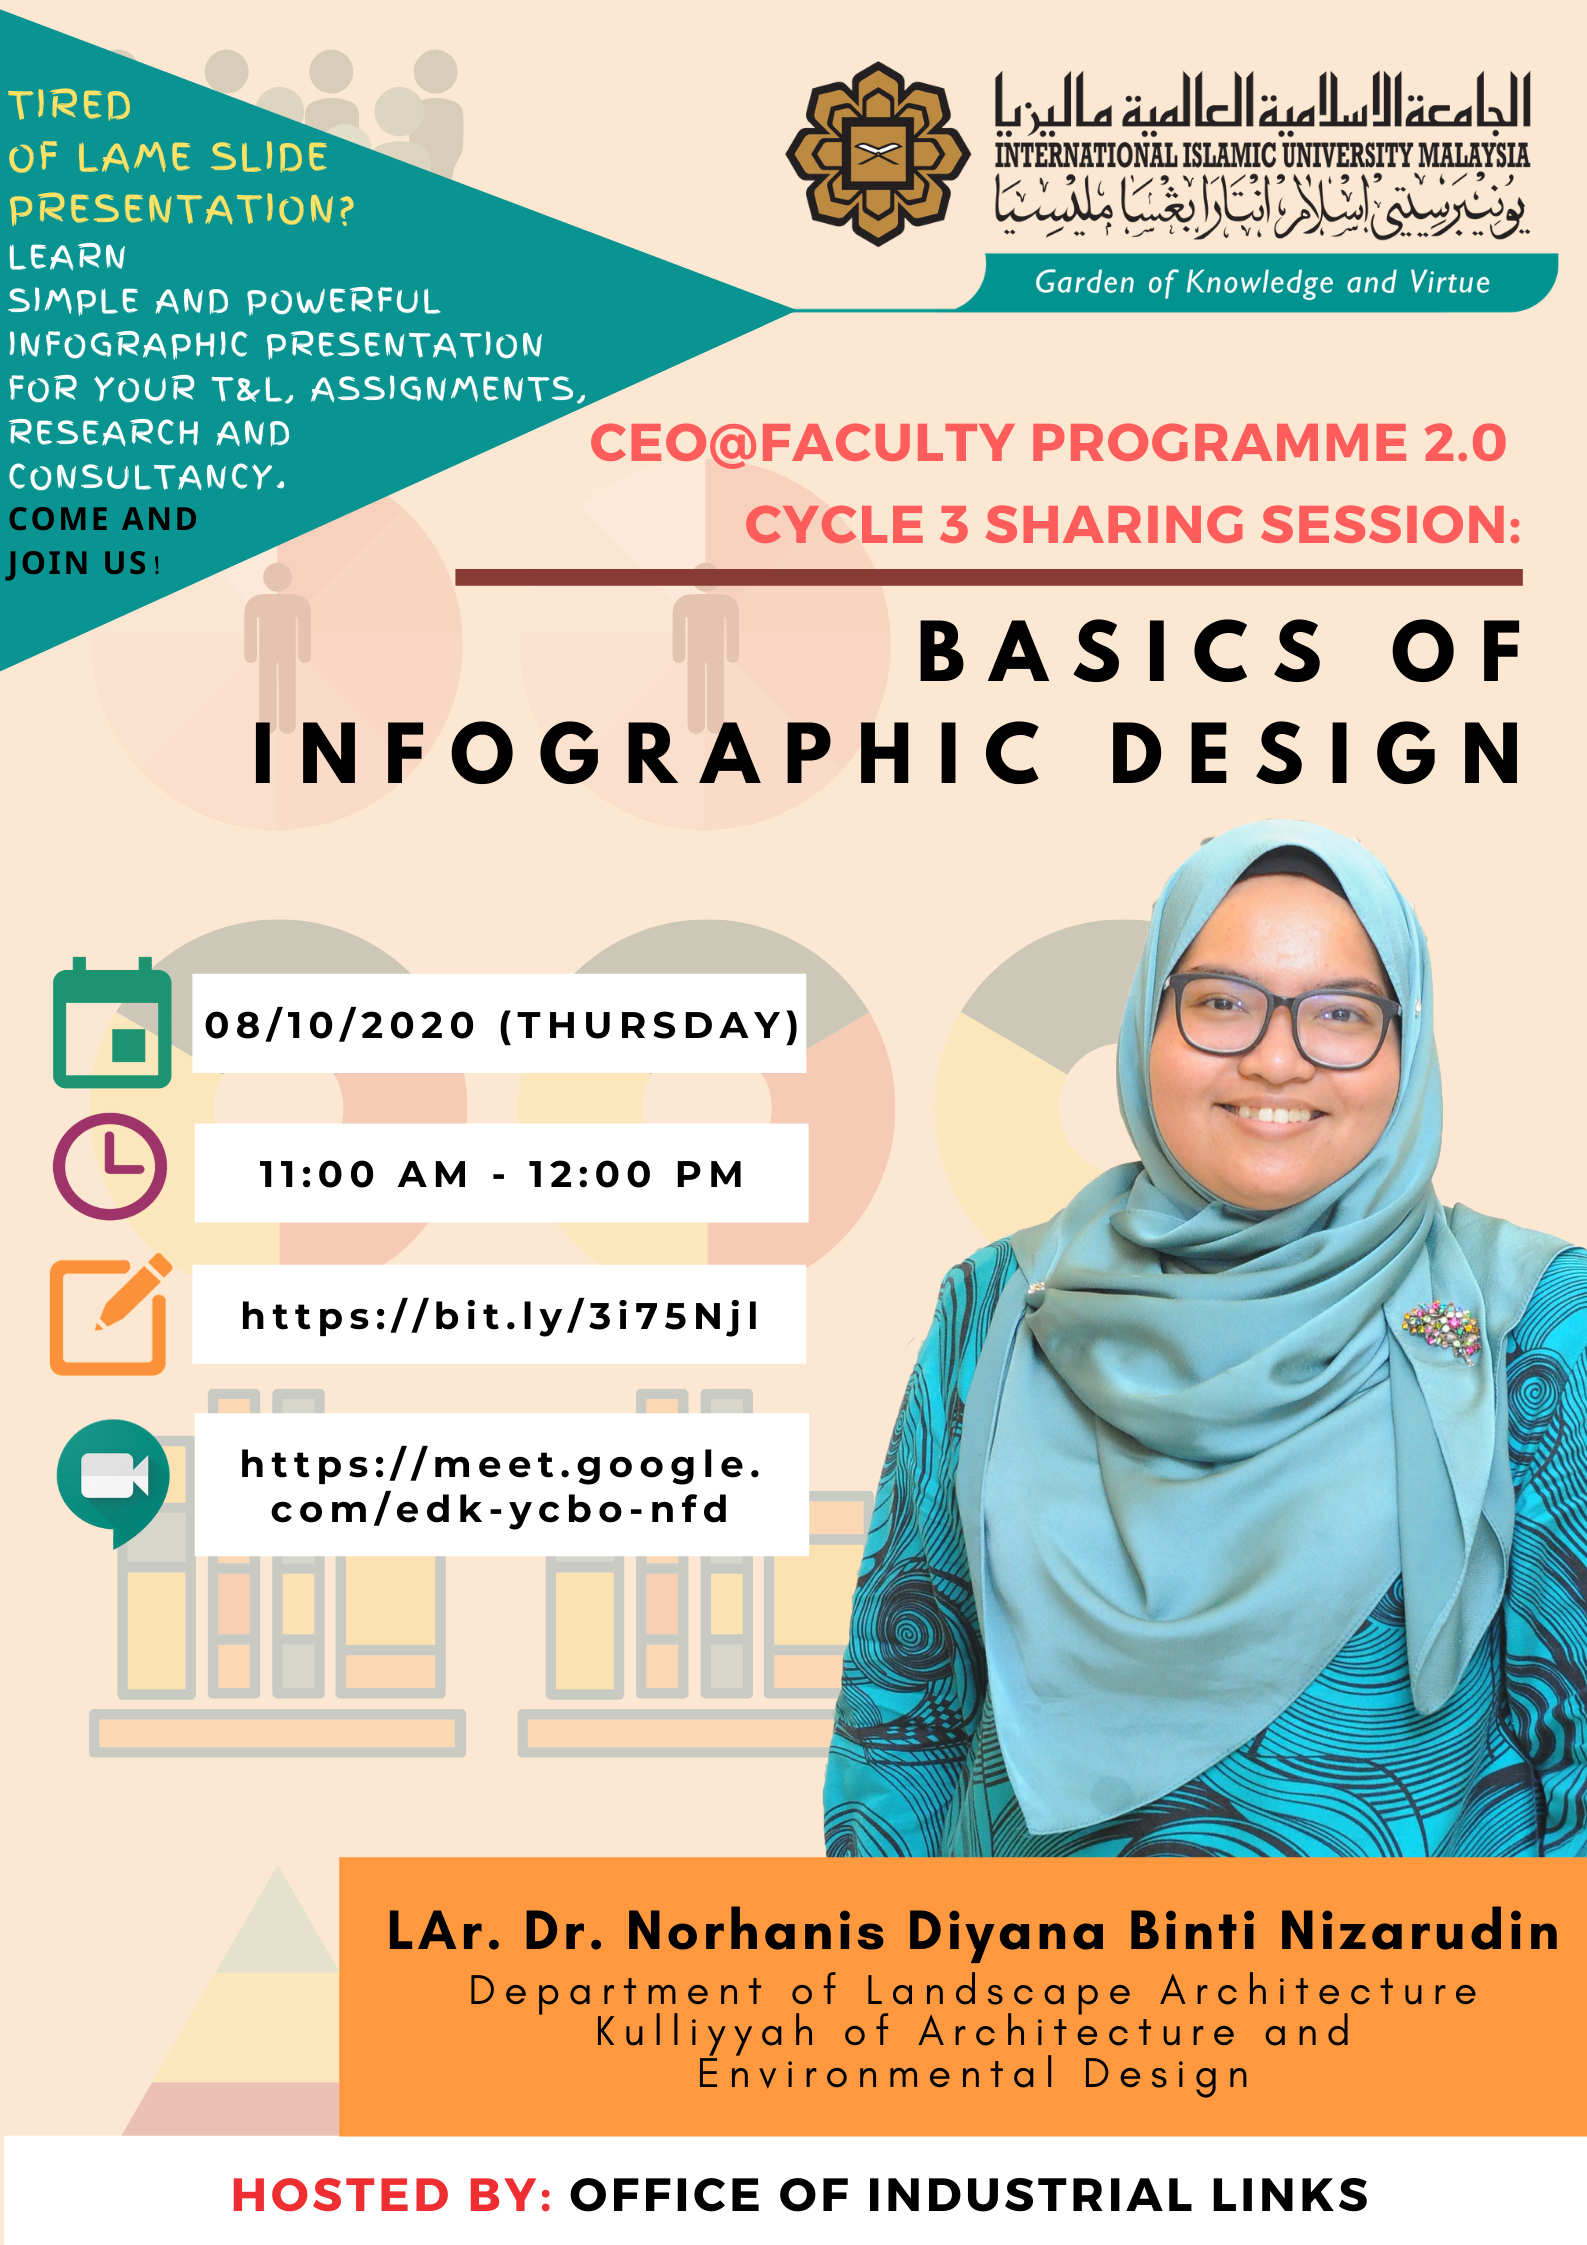 "INVITATION TO ATTEND WEBINAR SESSION ON ""CEO@FACULTY PROGRAMME 2.0 CYCLE 3 SHARING SESSION: BASICS OF INFOGRAPHIC DESIGN"""